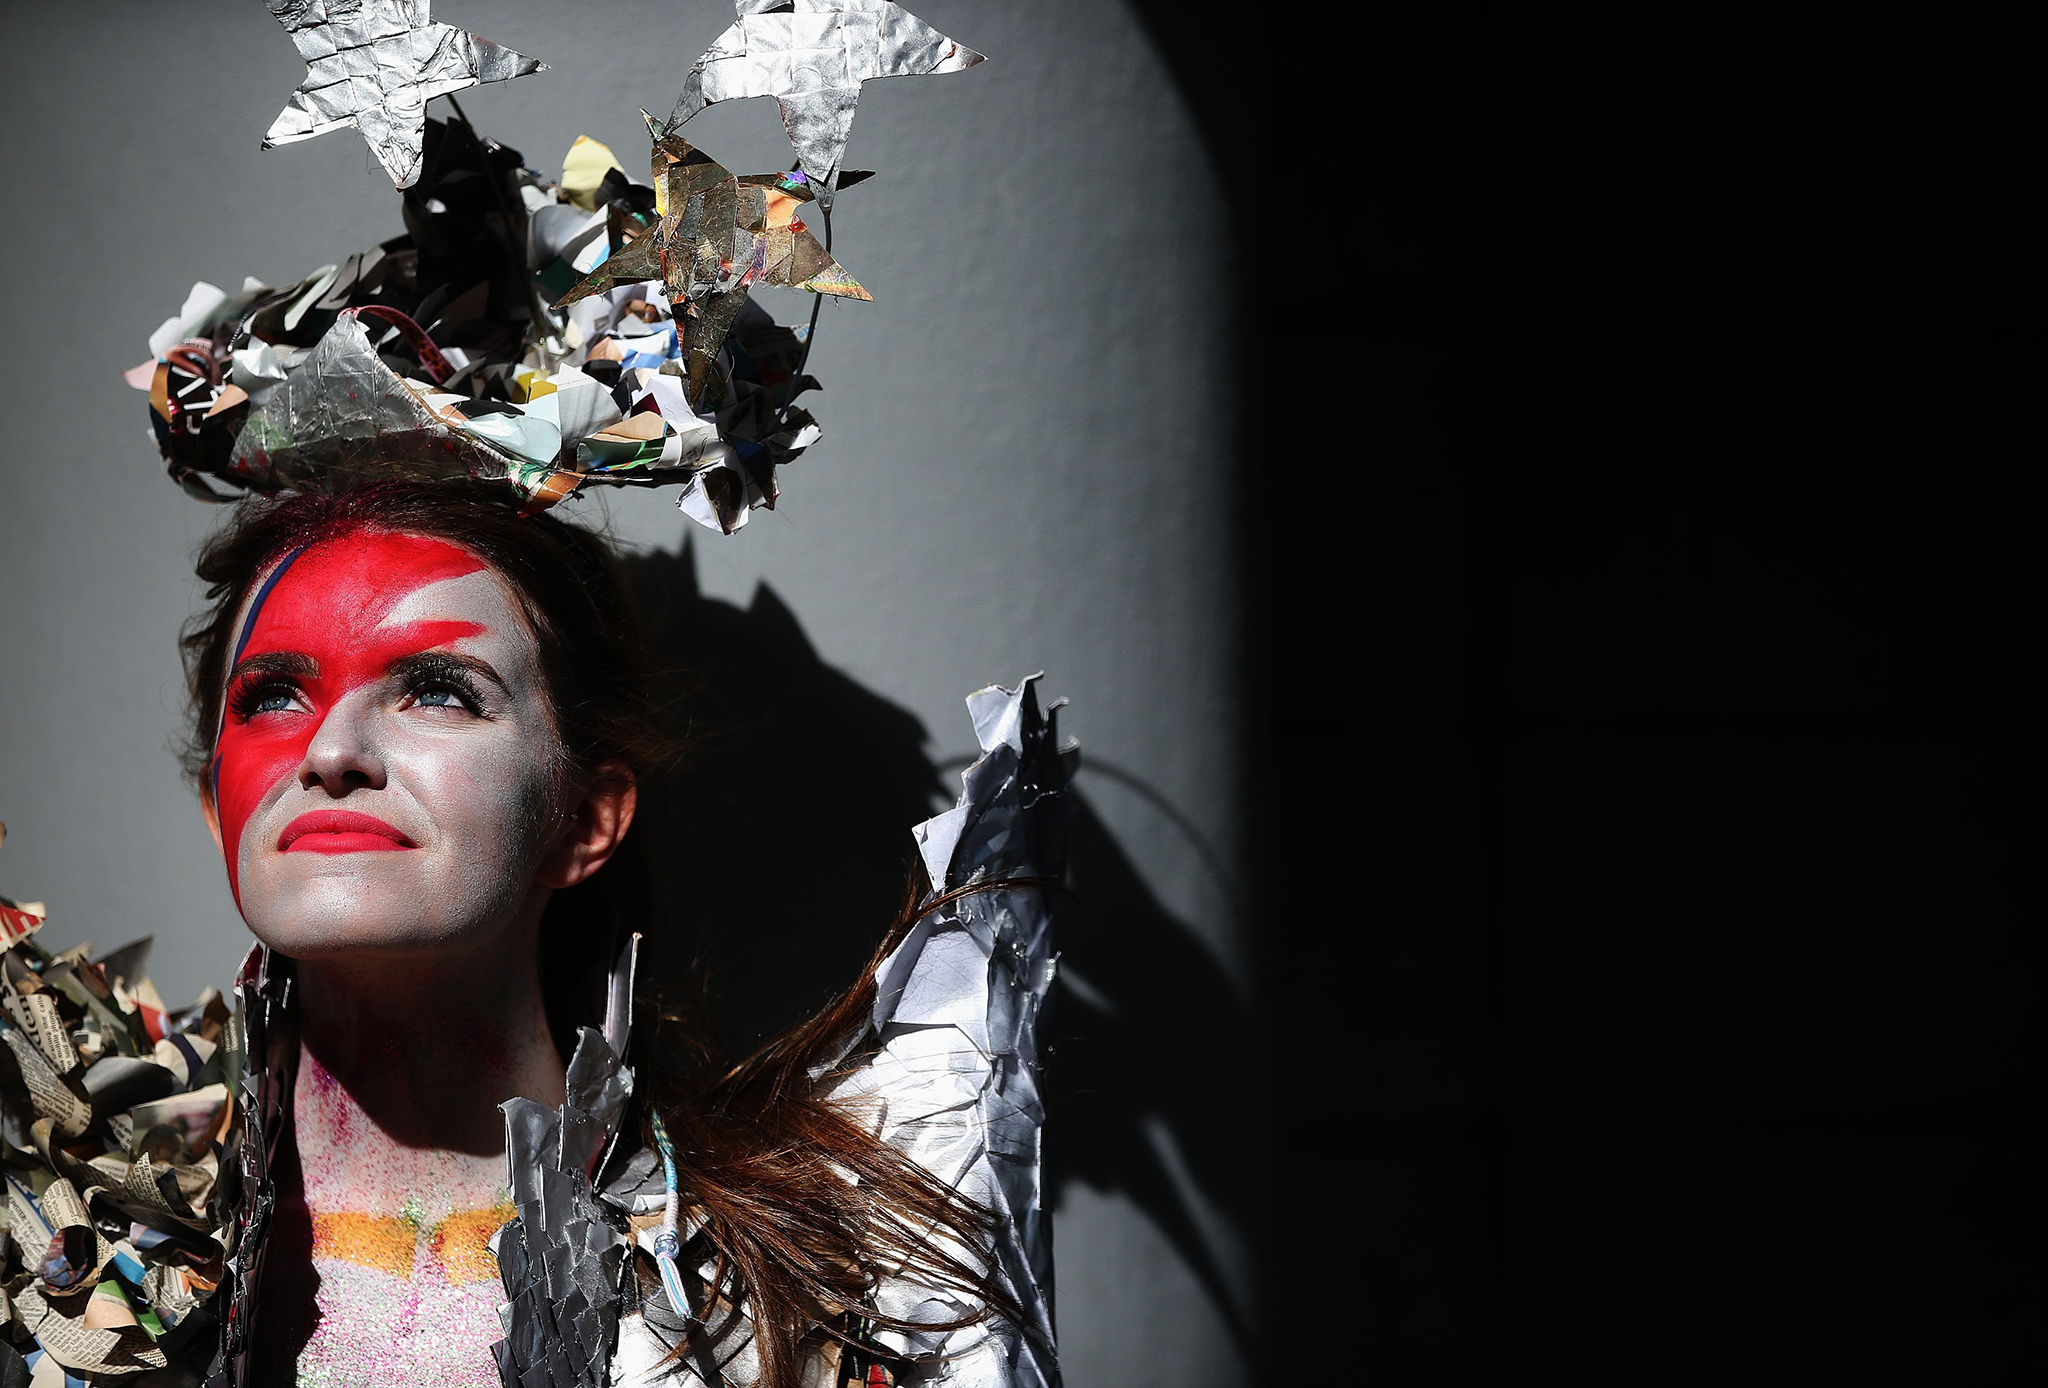 The 2016 Junk Kouture Eastern winner Rebecca McNally wears 'A Tribute to Ziggy Stardust' during the Bank of Ireland Junk Kouture 2017 contest launch at Charlotte Quay in Dublin. PRESS ASSOCIATION Photo. Picture date: Thursday September 8, 2016. The contest is Ireland's recycled fashion competition for secondary school students which invites young people to design and create works of fashion art from recyclable materials. Photo credit should read: Brian Lawless/PA Wire